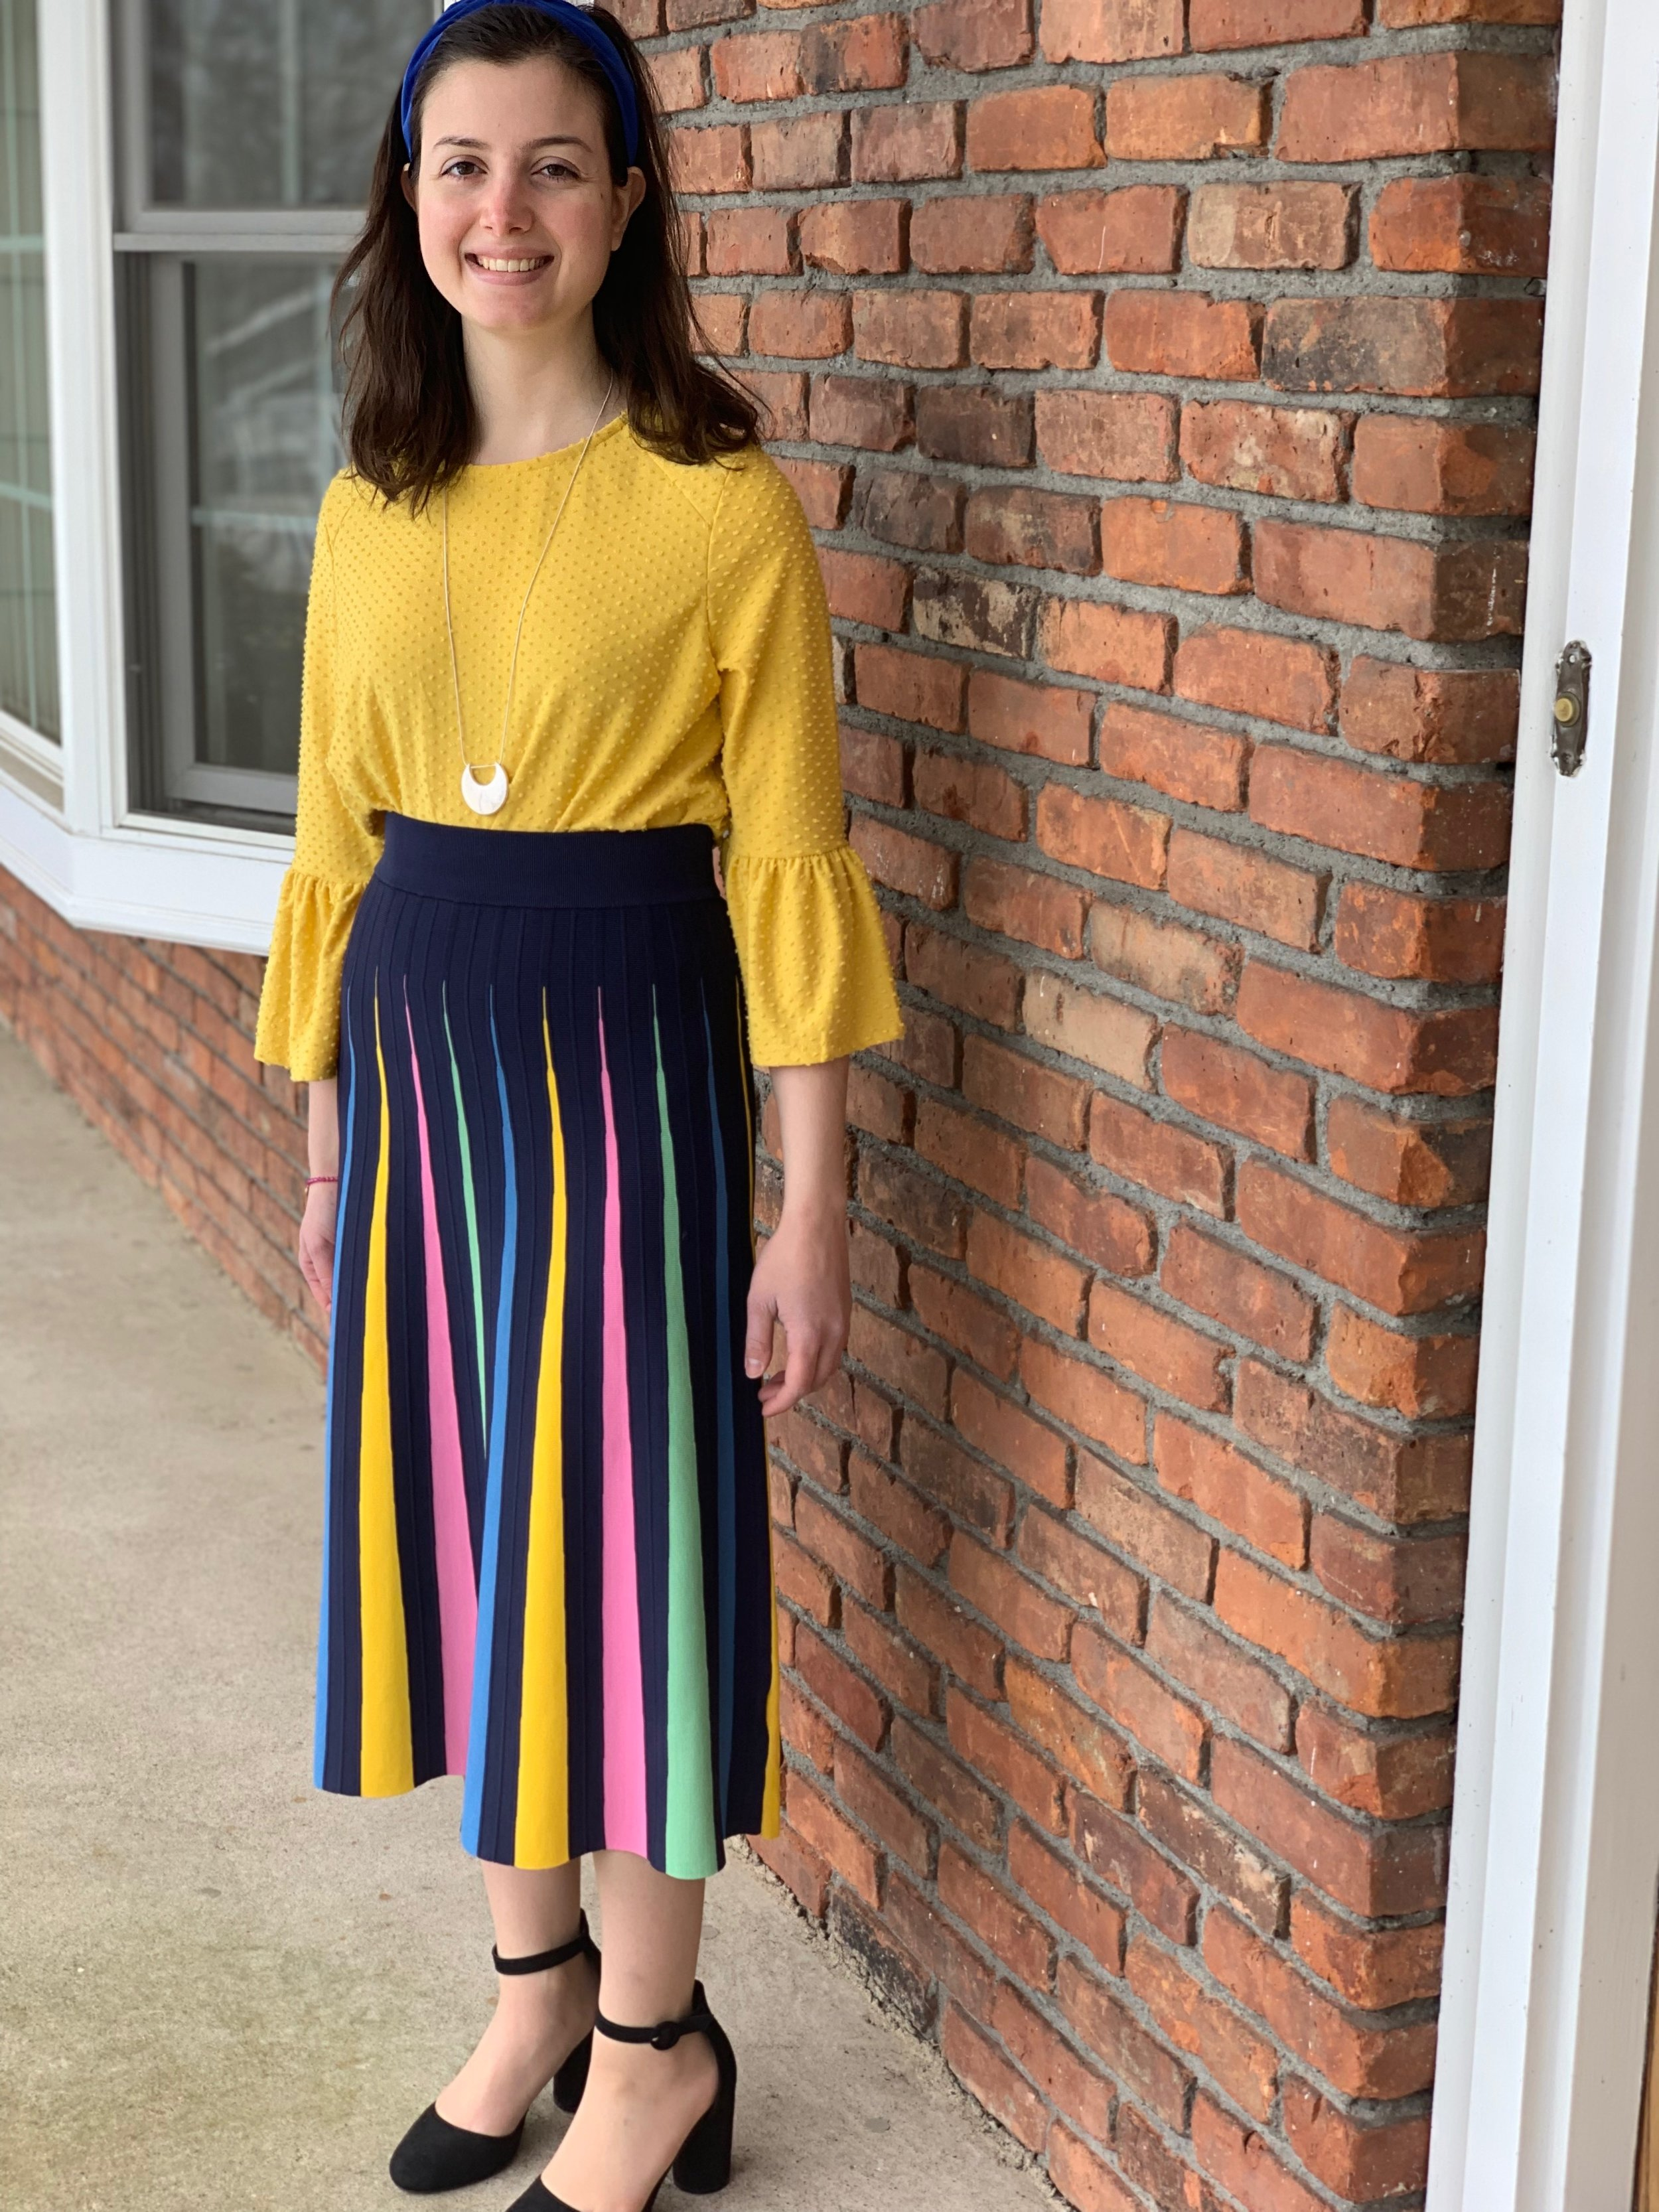 oUTFIT DETAILS - 1. Anthropologie: headband (from last summer, can't find the link anymore) and skirt2. TJ Maxx: shirt3. Target: necklace4. Kohl's: shoes